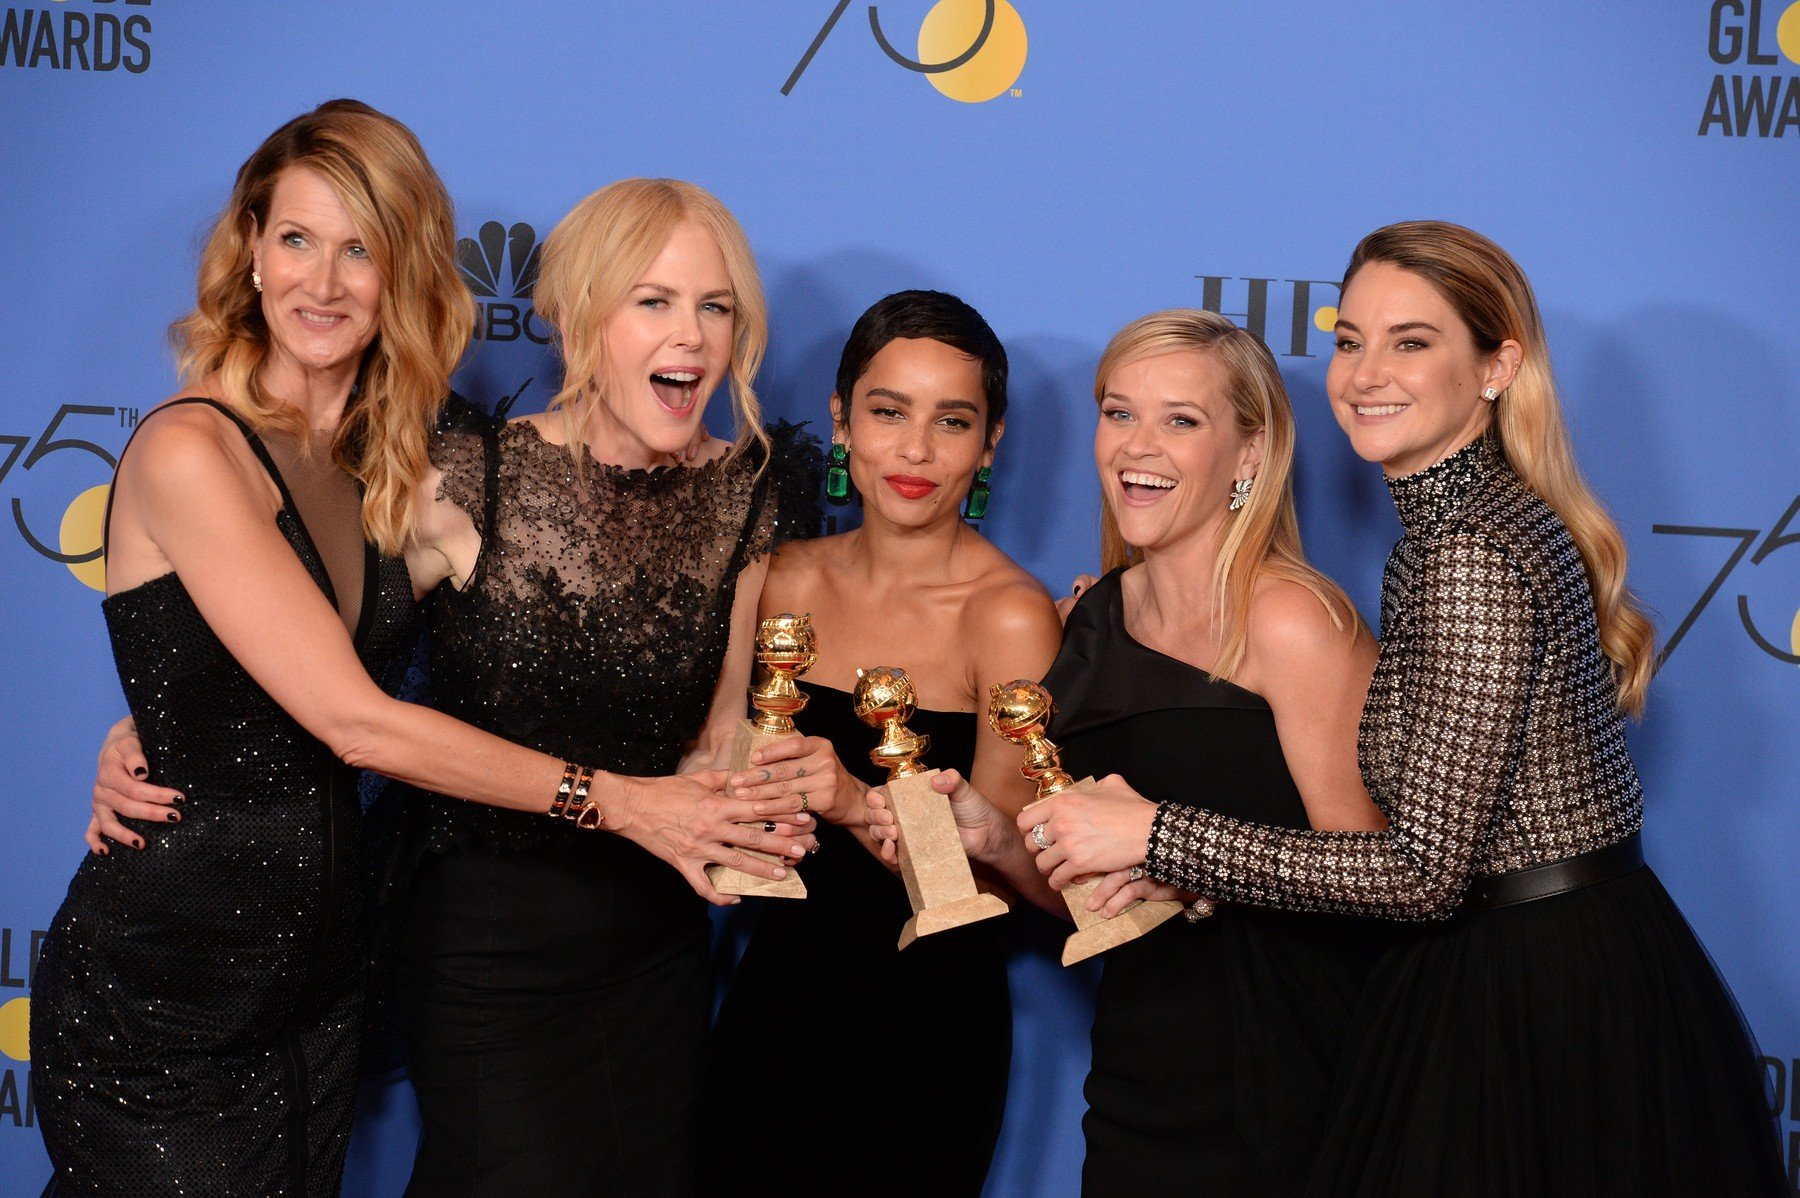 (L-R) Actors Laura Dern, Nicole Kidman, Zoe Kravitz, Reese Witherspoon and Shailene Woodley of 'Big Little Lies,' winner of the award for Best Television Limited Series or Motion Picture Made for Television posing in the press room during The 75th Annual Golden Globe Awards at The Beverly Hilton Hotel on January 7, 2018 in Los Angeles, CA, USA., Image: 359518769, License: Rights-managed, Restrictions: , Model Release: no, Credit line: Profimedia, Abaca